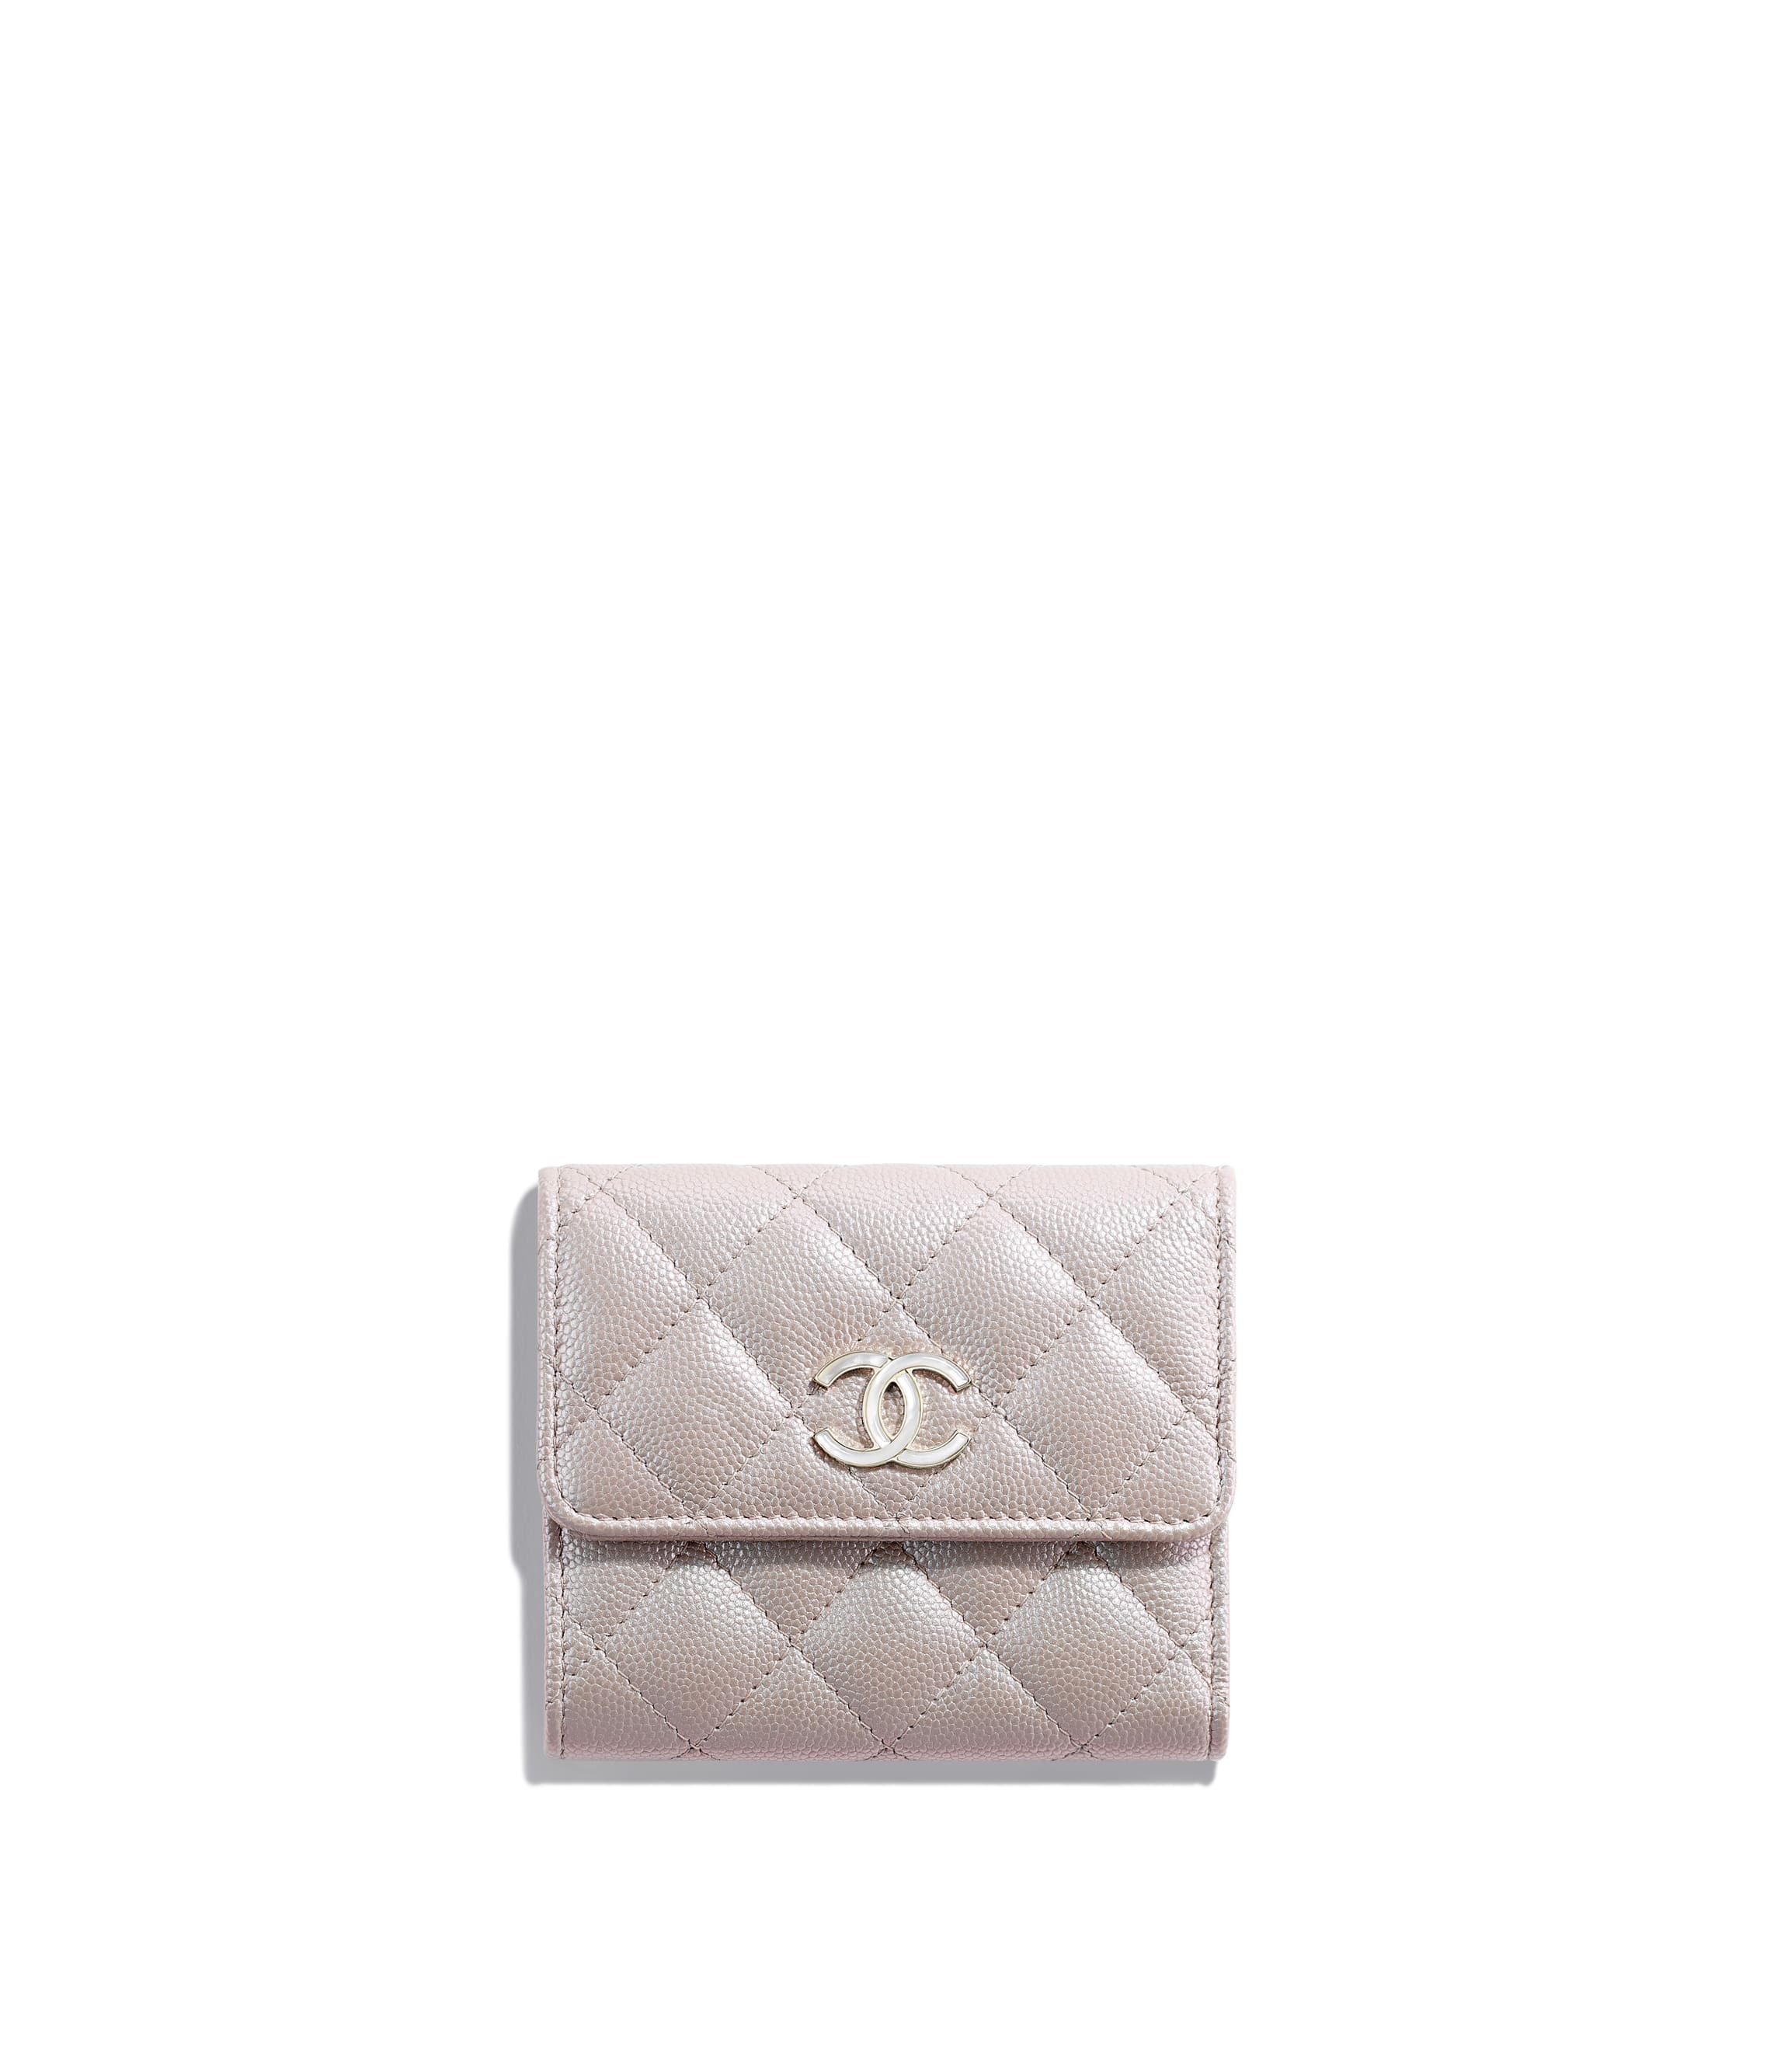 7457c2ccacfcd Small Wallets - Small Leather Goods - CHANEL